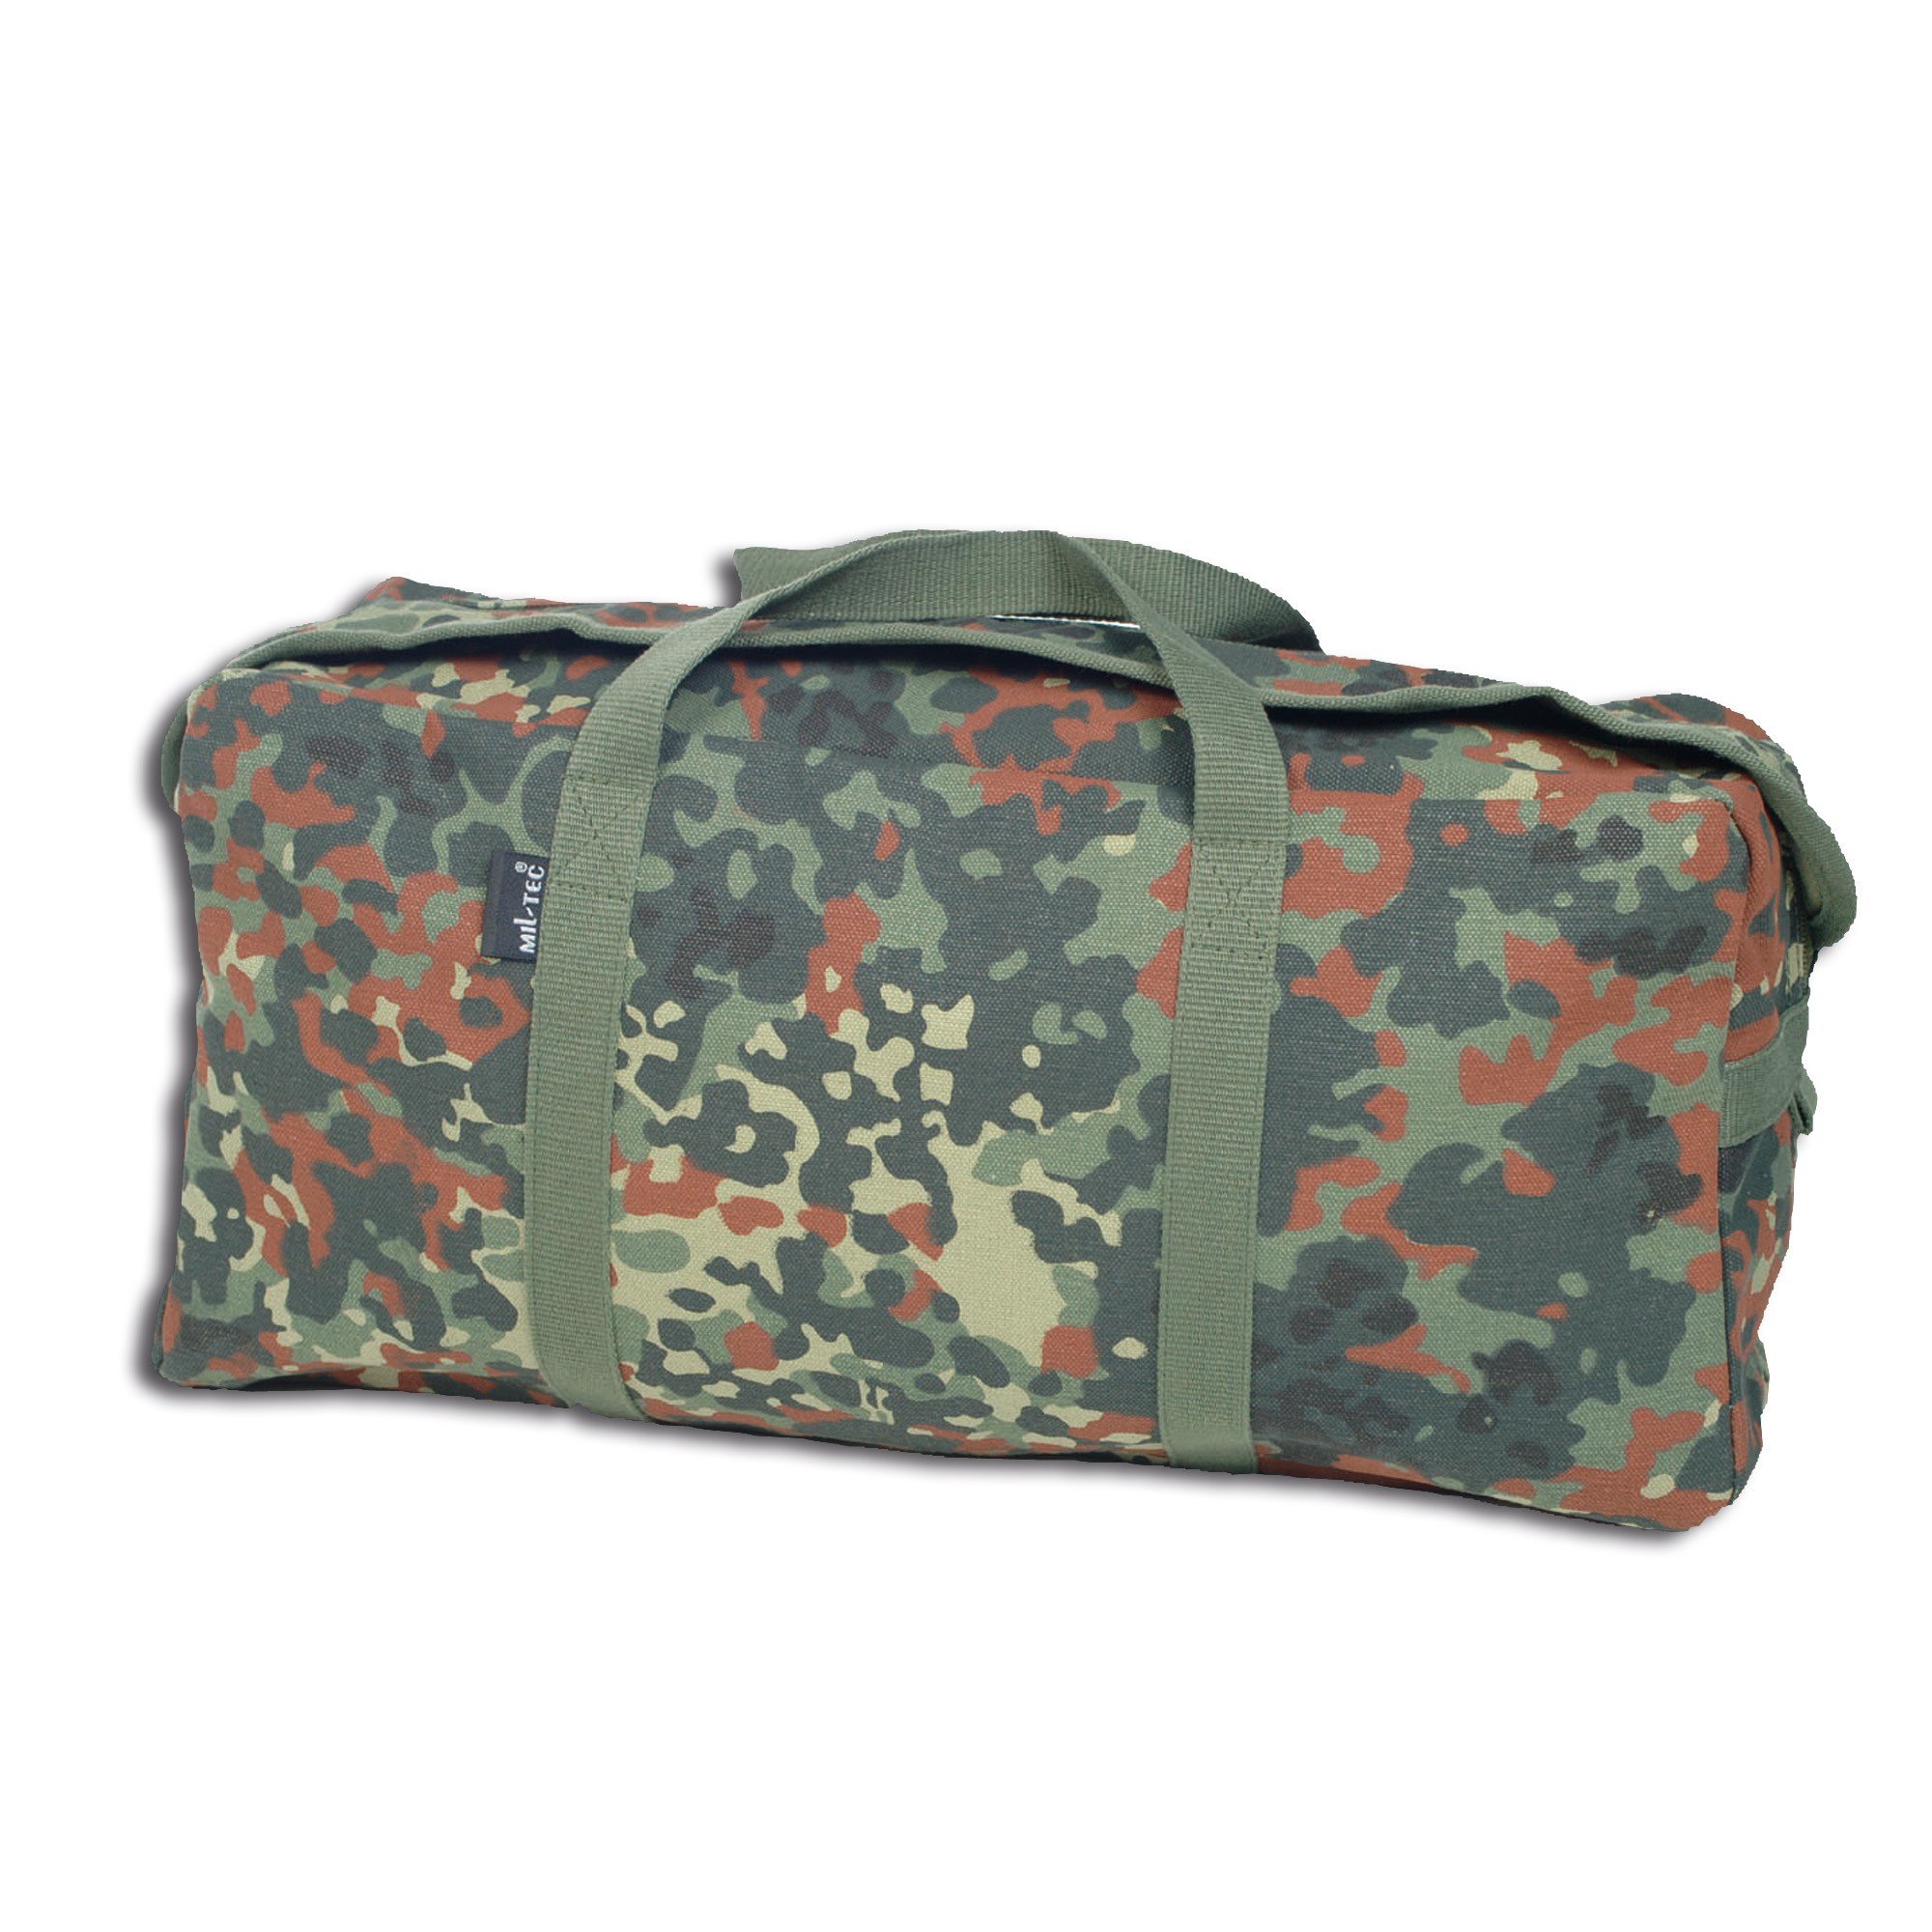 Bolsa de transporte Canvas mediana flecktarn